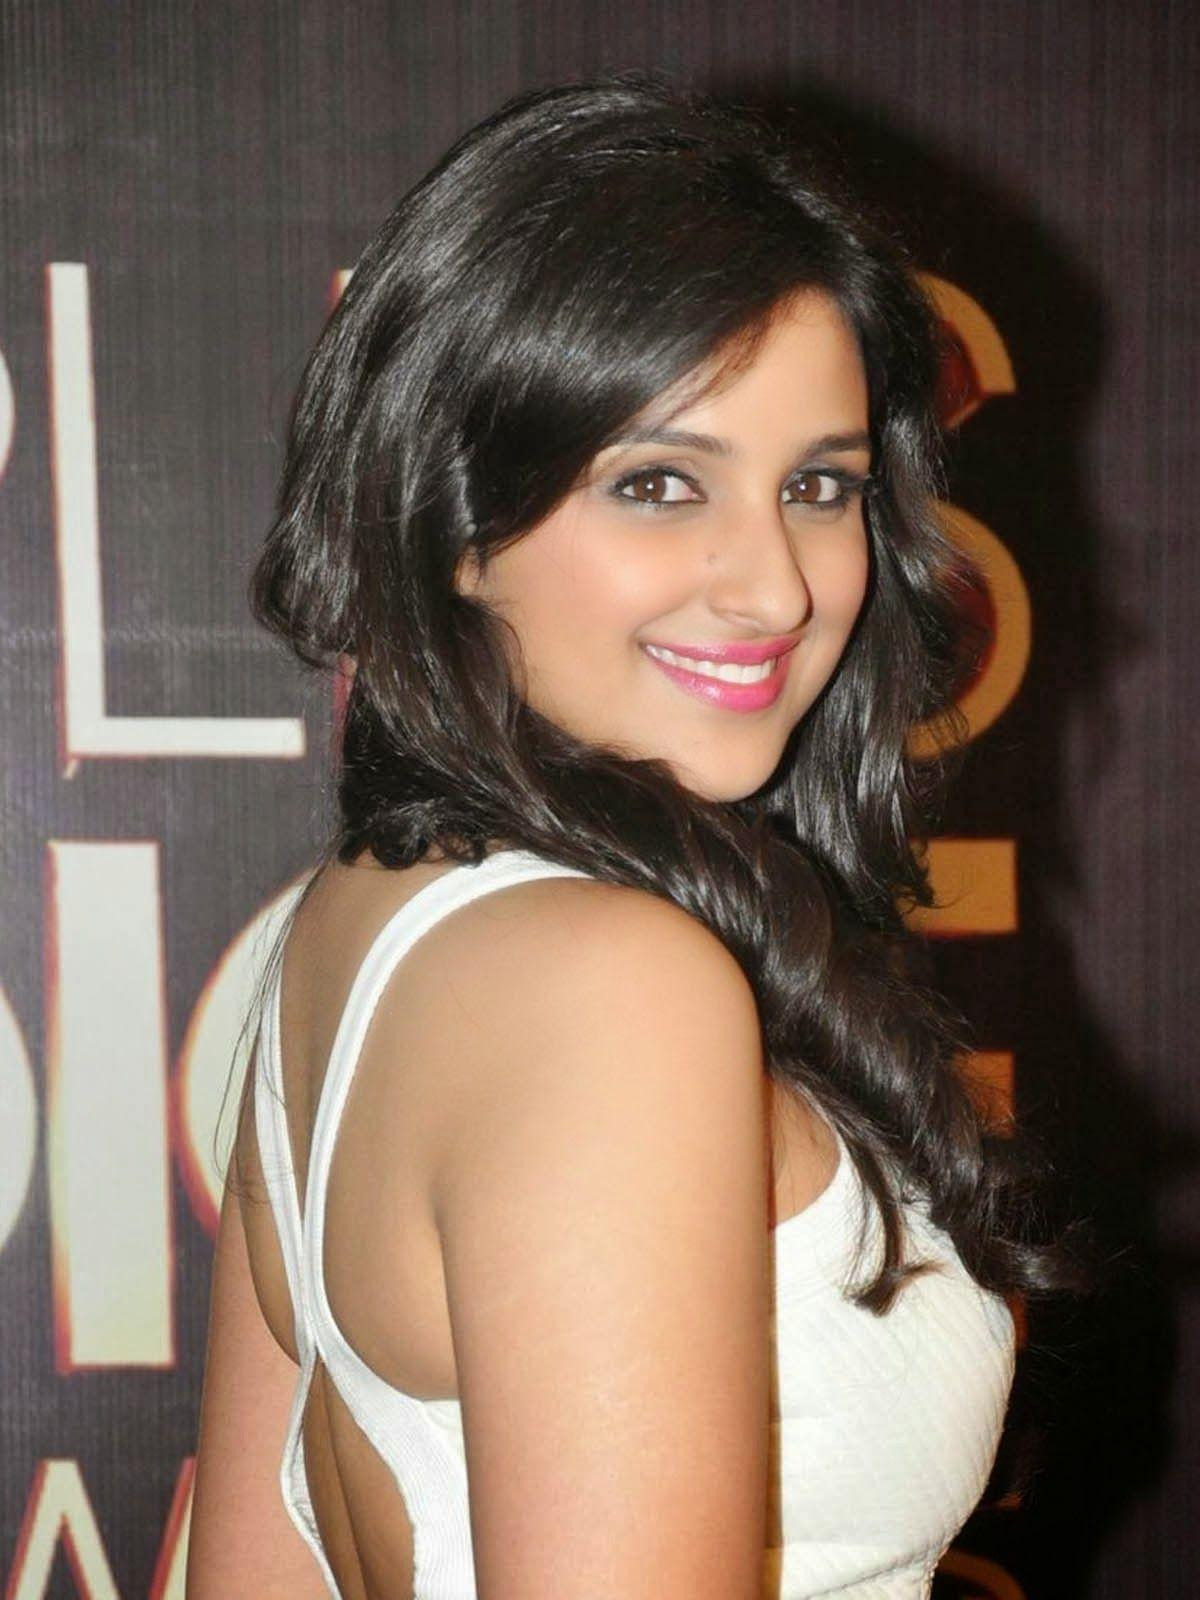 Bollywood Actress Hd Wallpapers For Mobile Wallpaper Cave